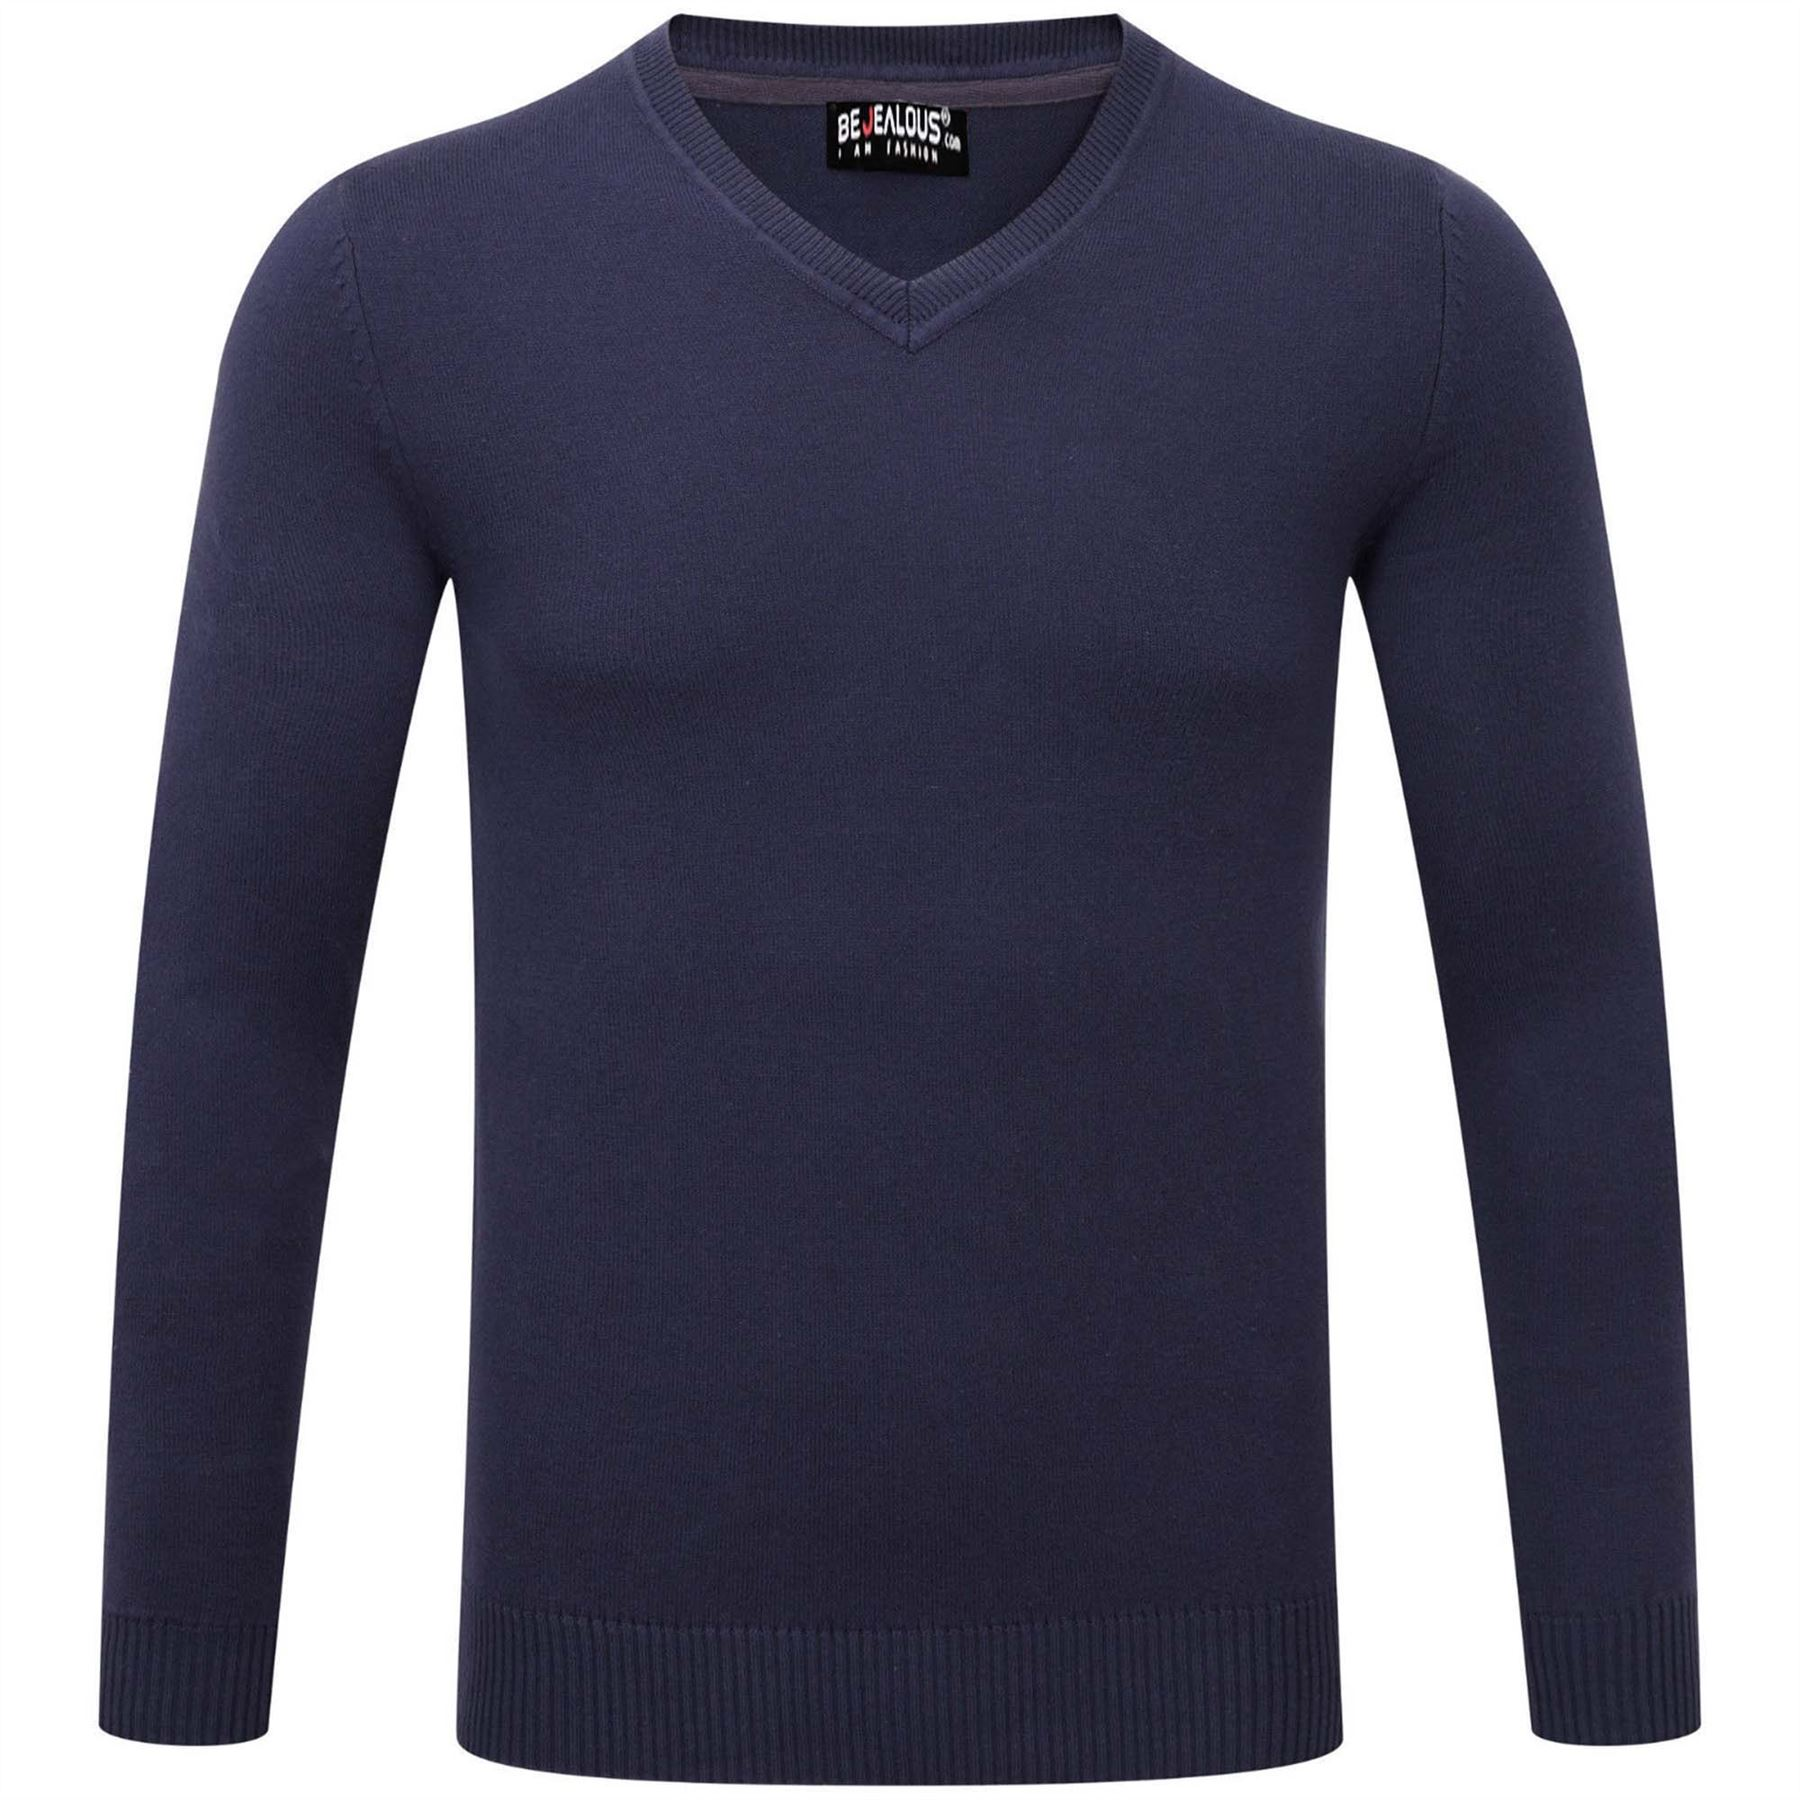 New-Mens-Long-Sleeve-Sweatshirt-Fine-Guage-V-Neck-Jumper-Casual-Sweater-Pullover thumbnail 5